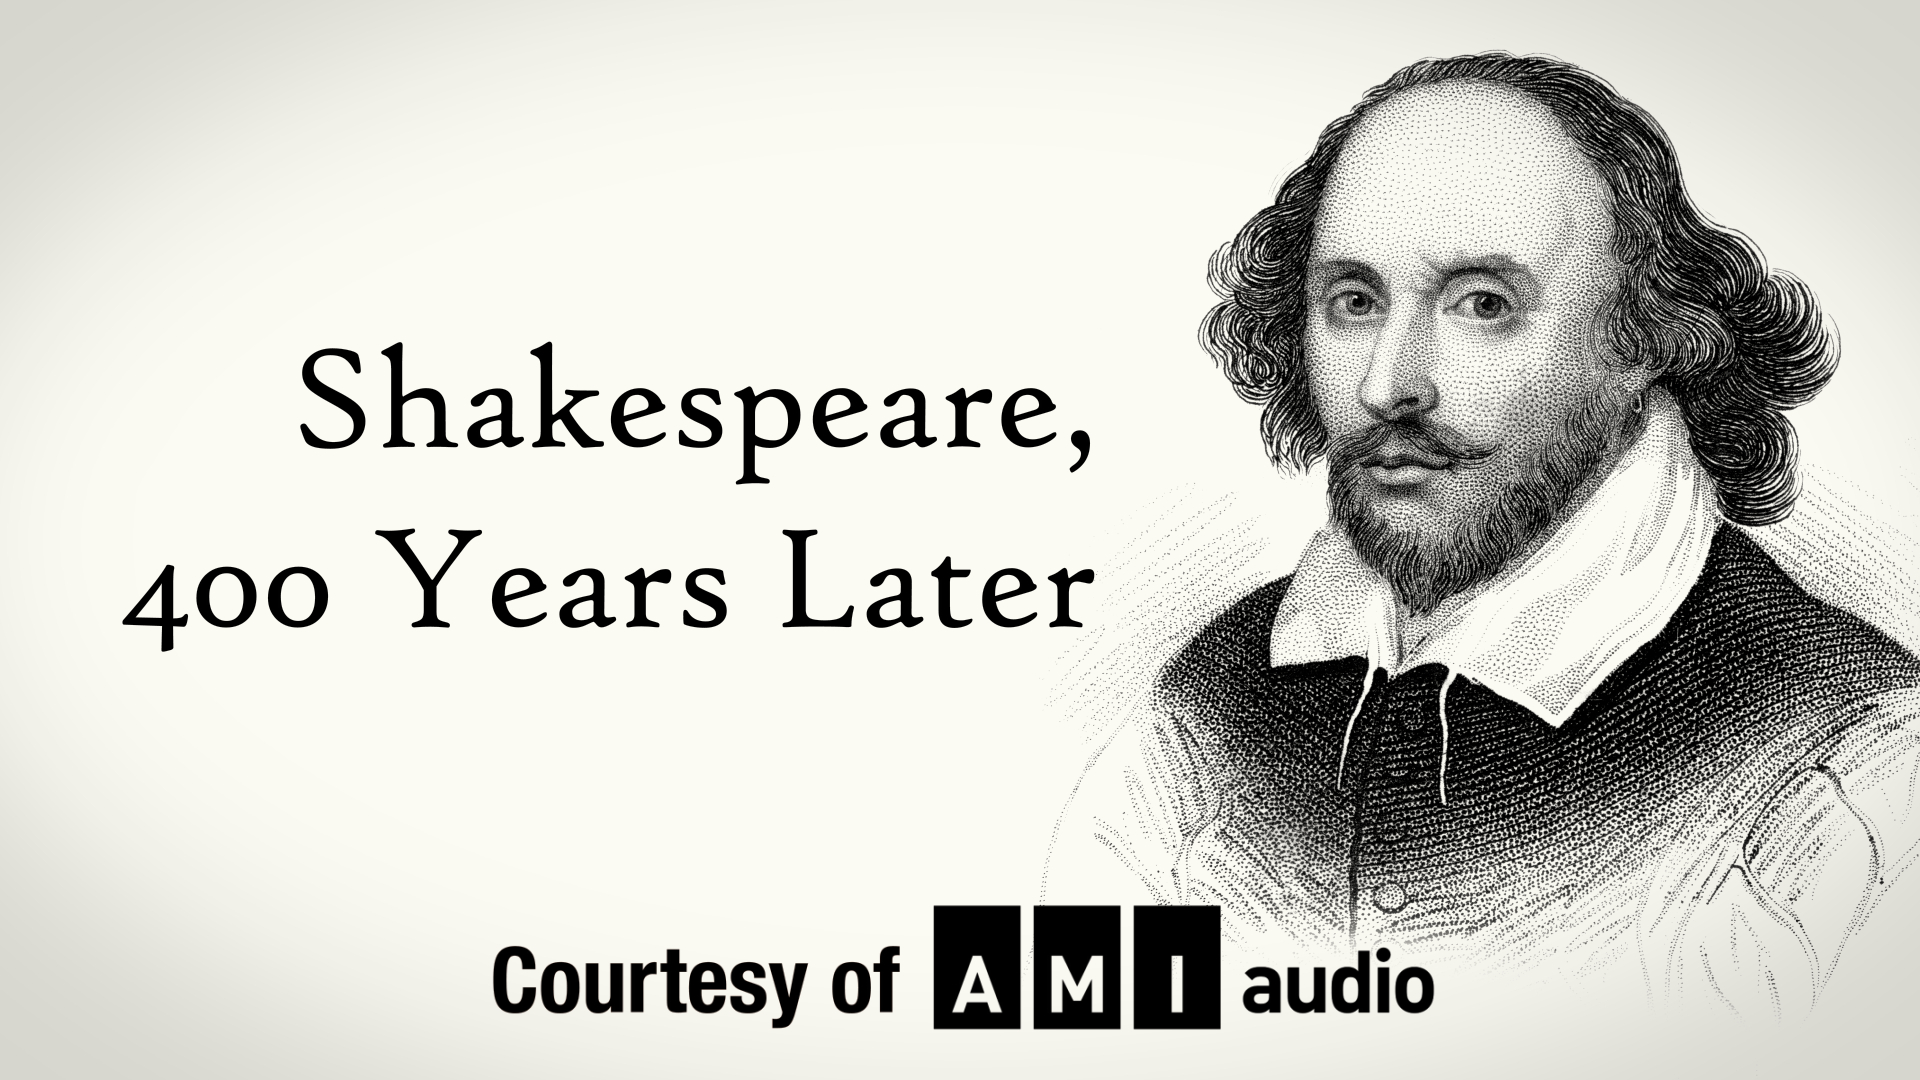 Image Reads: Shakespeare, 400 Years Later